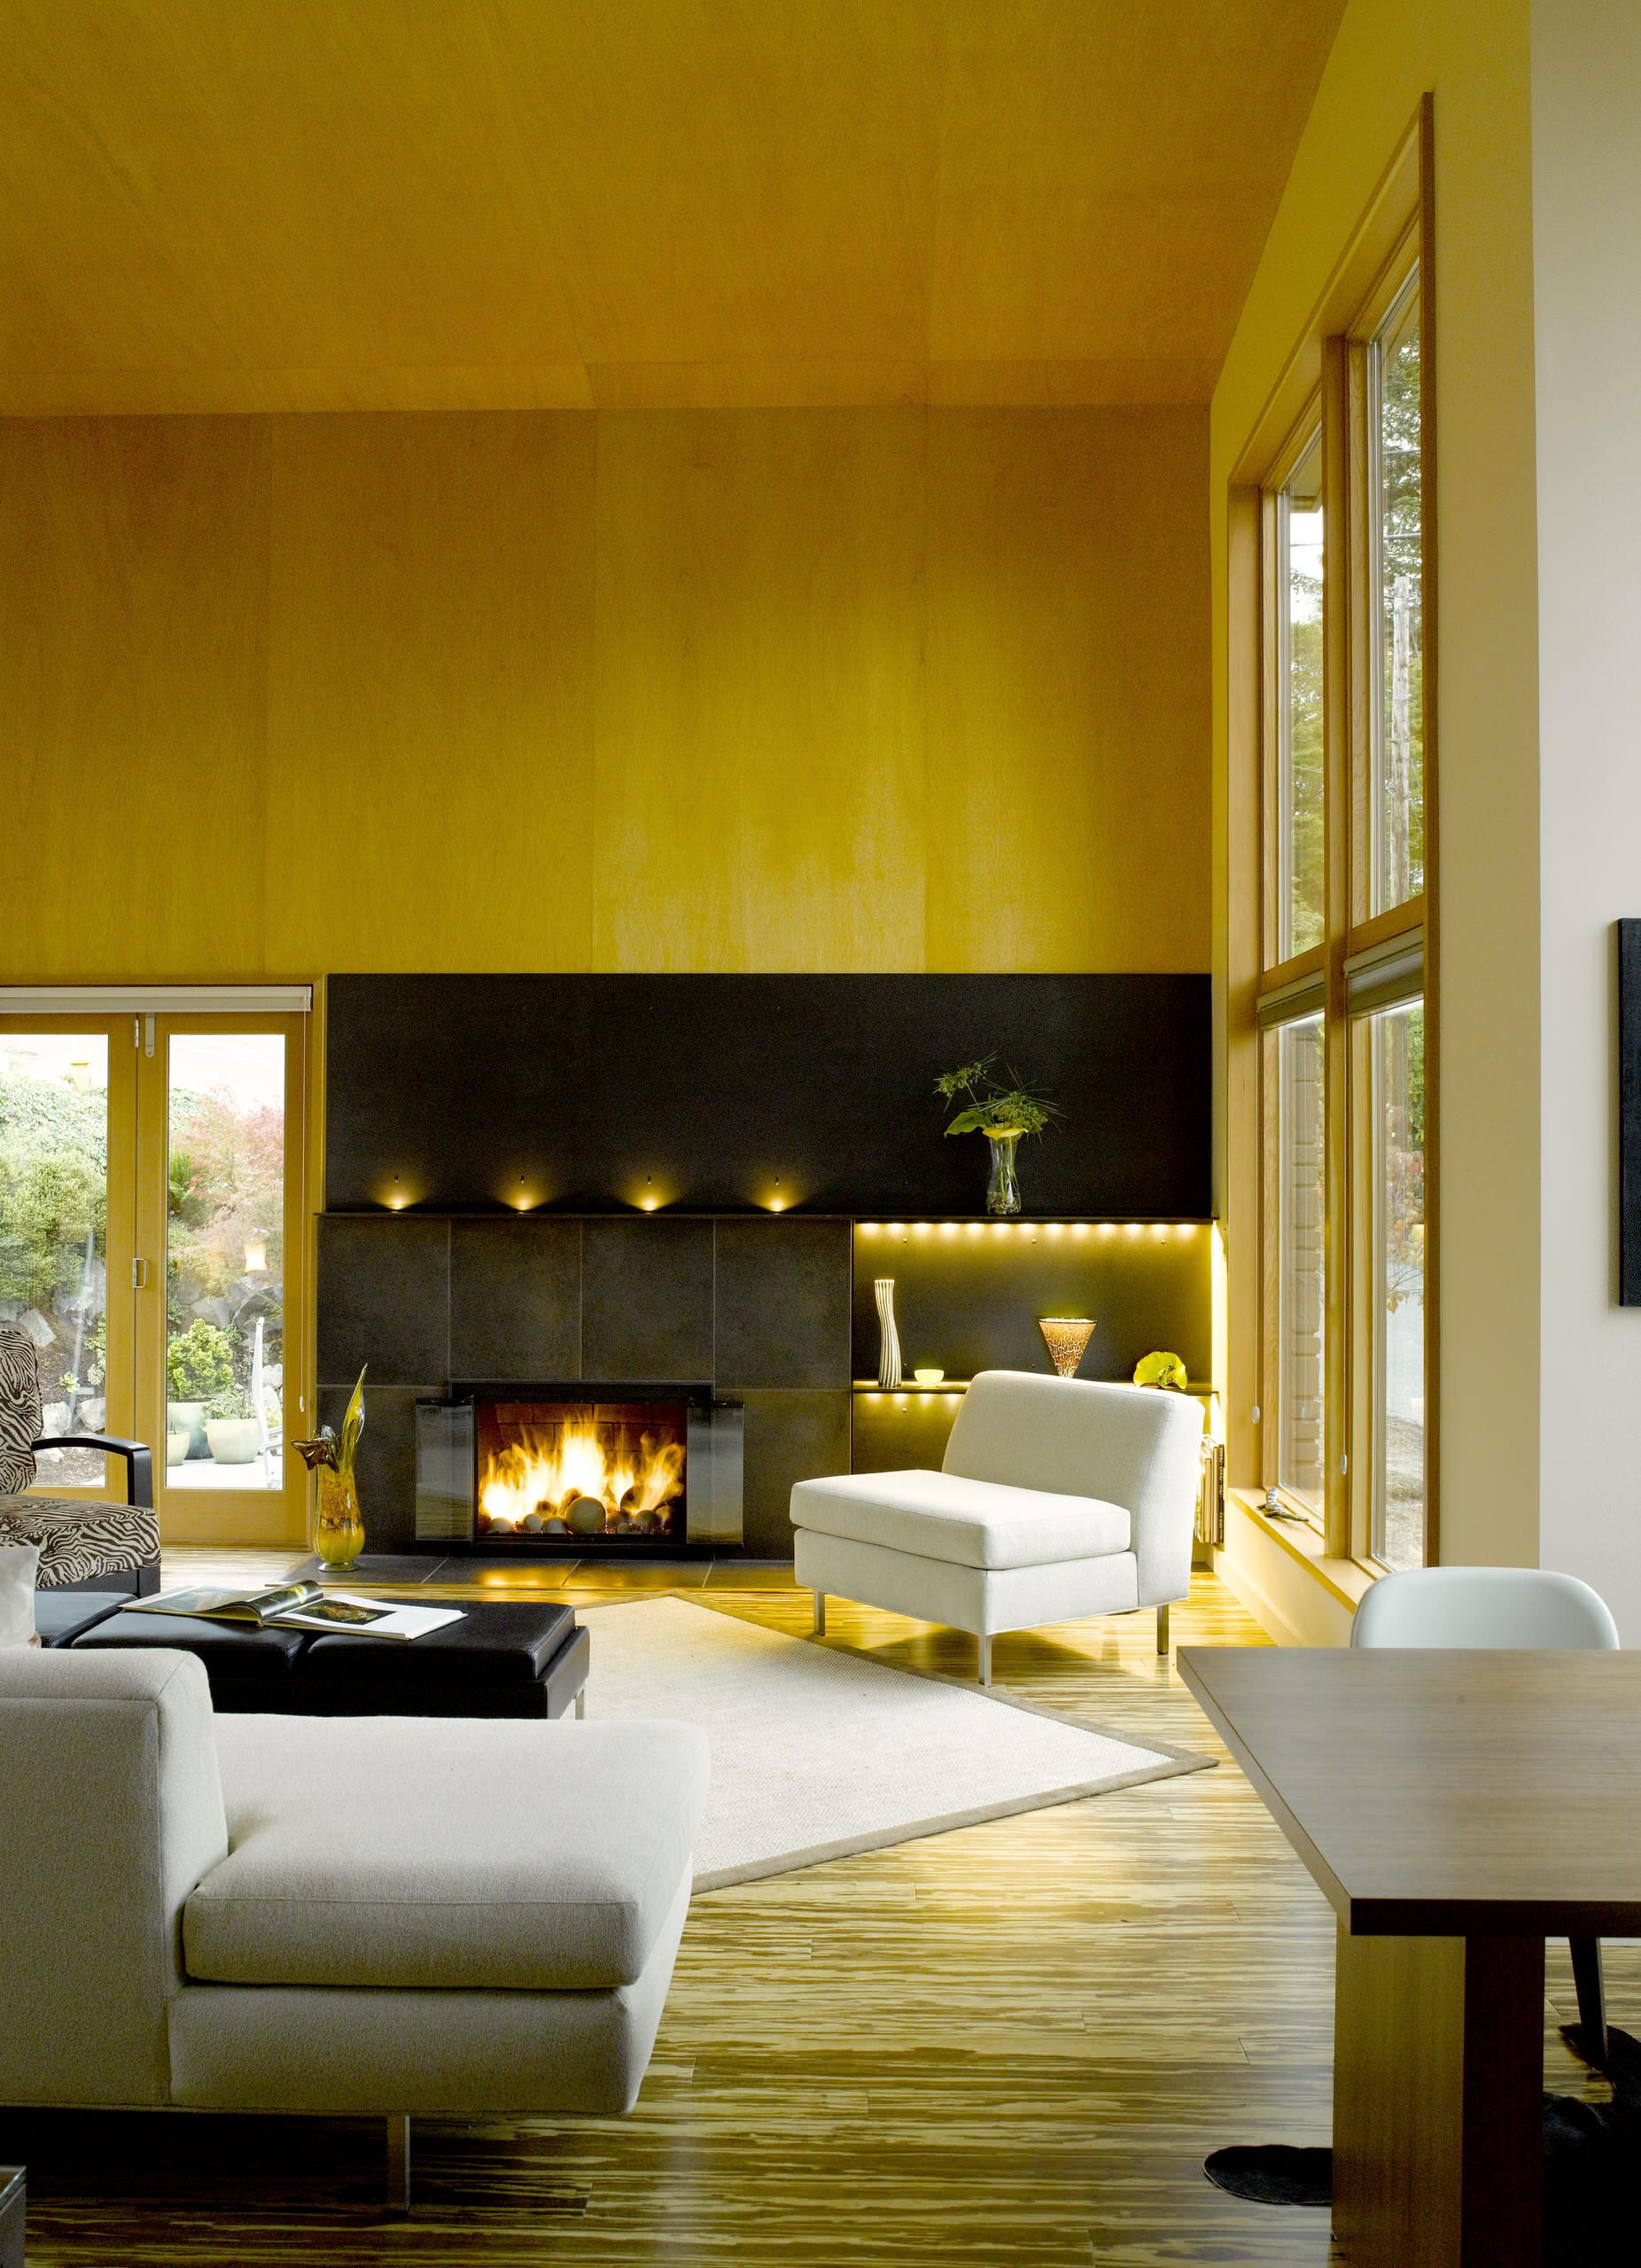 75 Beautiful Modern Bamboo Floor Living Room Pictures Ideas February 2021 Houzz